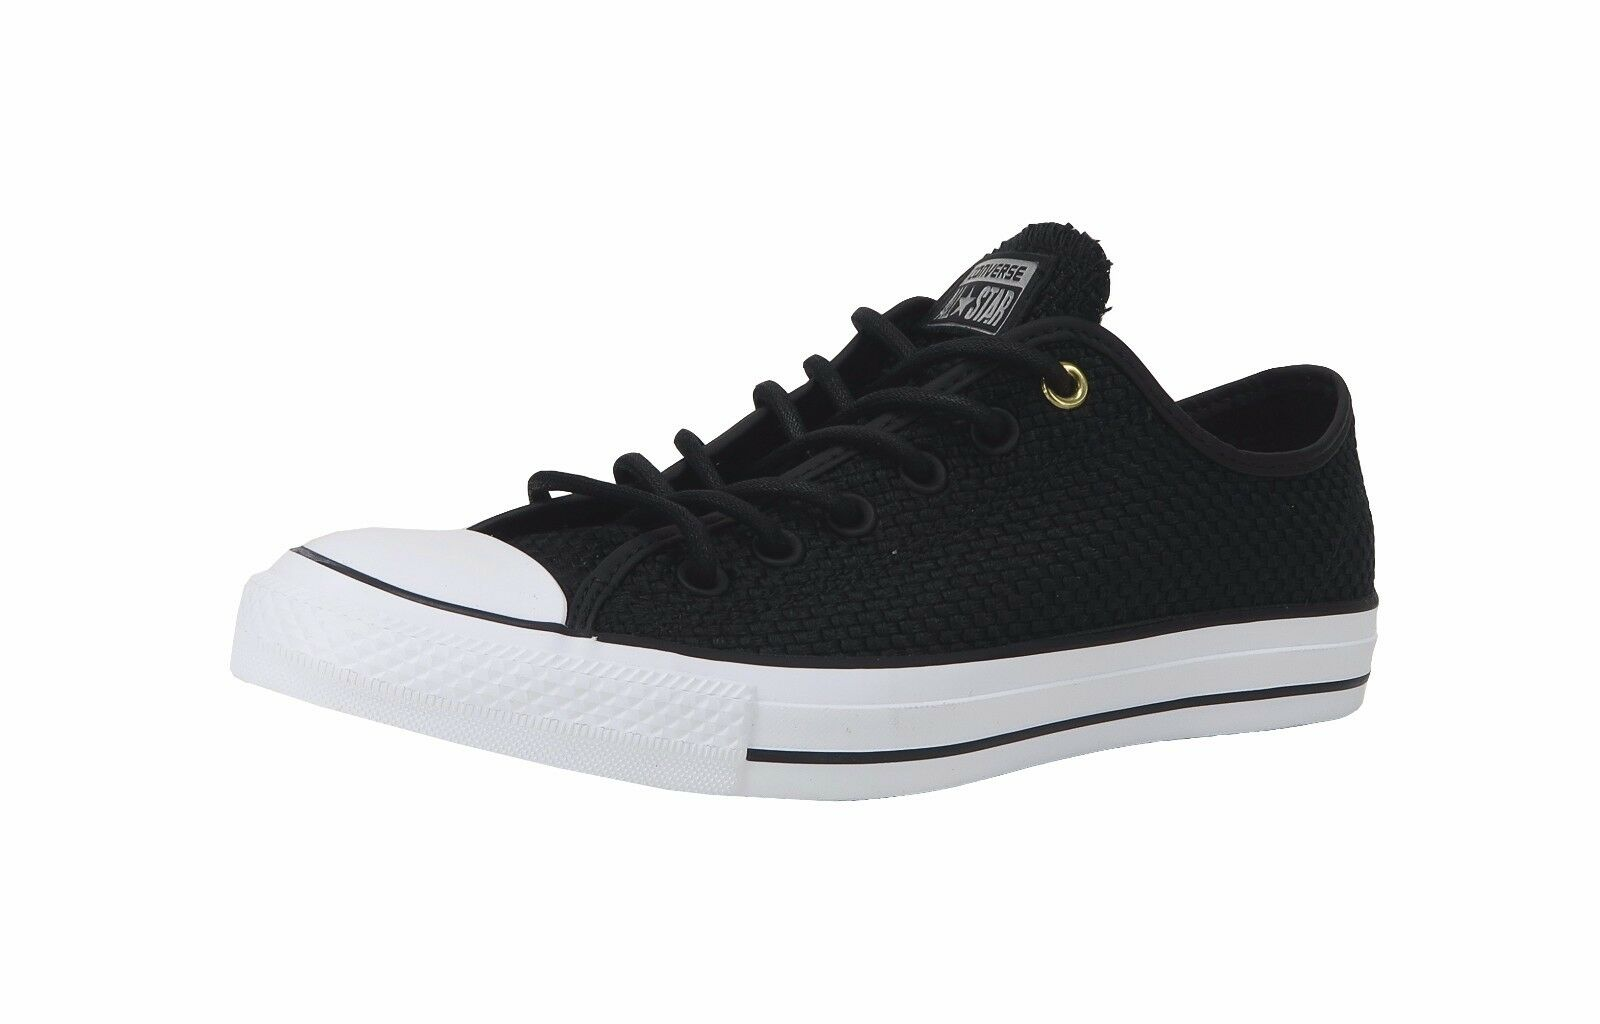 24d2219e191fb2 Converse Chuck Taylor All Star Ox Black Low Top SNEAKERS Mens 7 ...